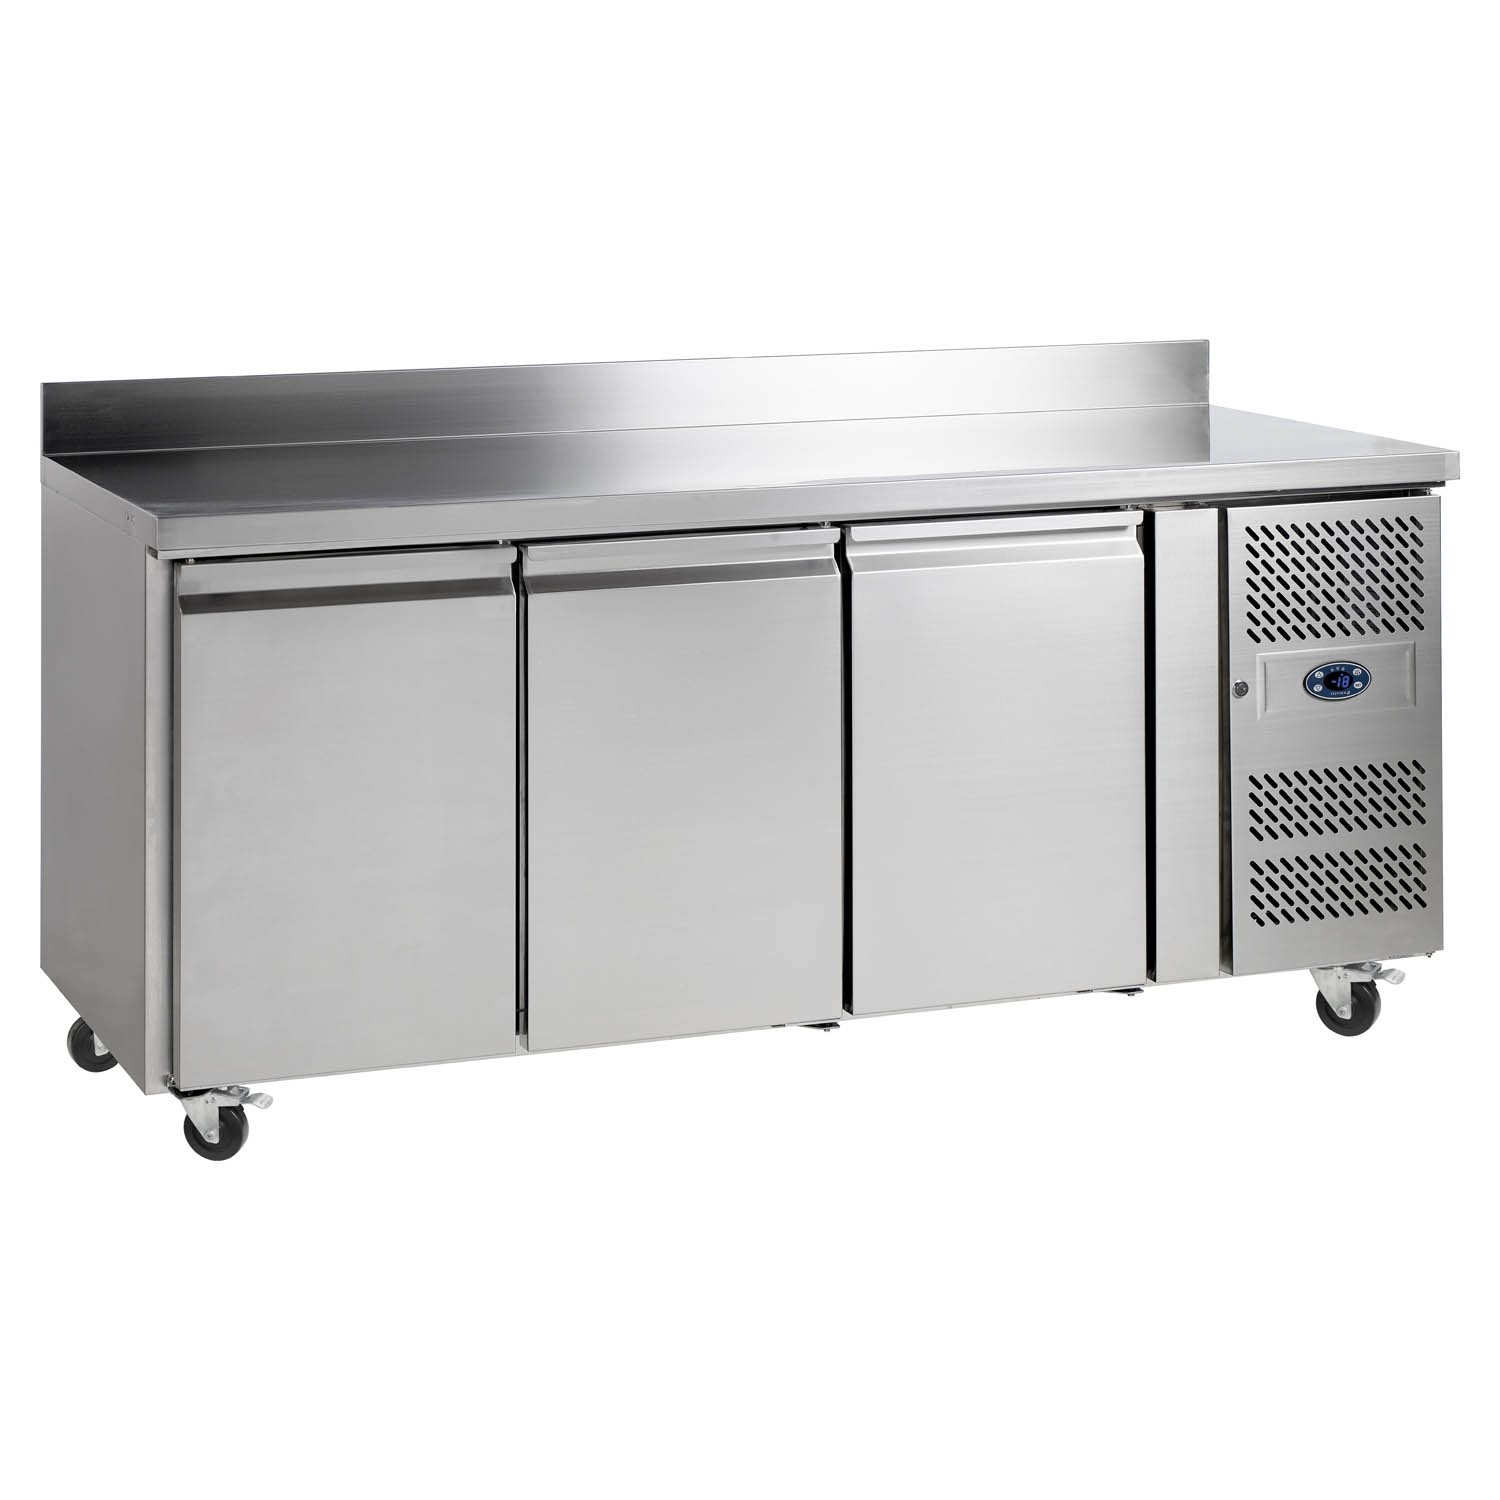 Tefcold CF7310P SS Stainless Steel Gastronorm Counter Freezer 3-Door